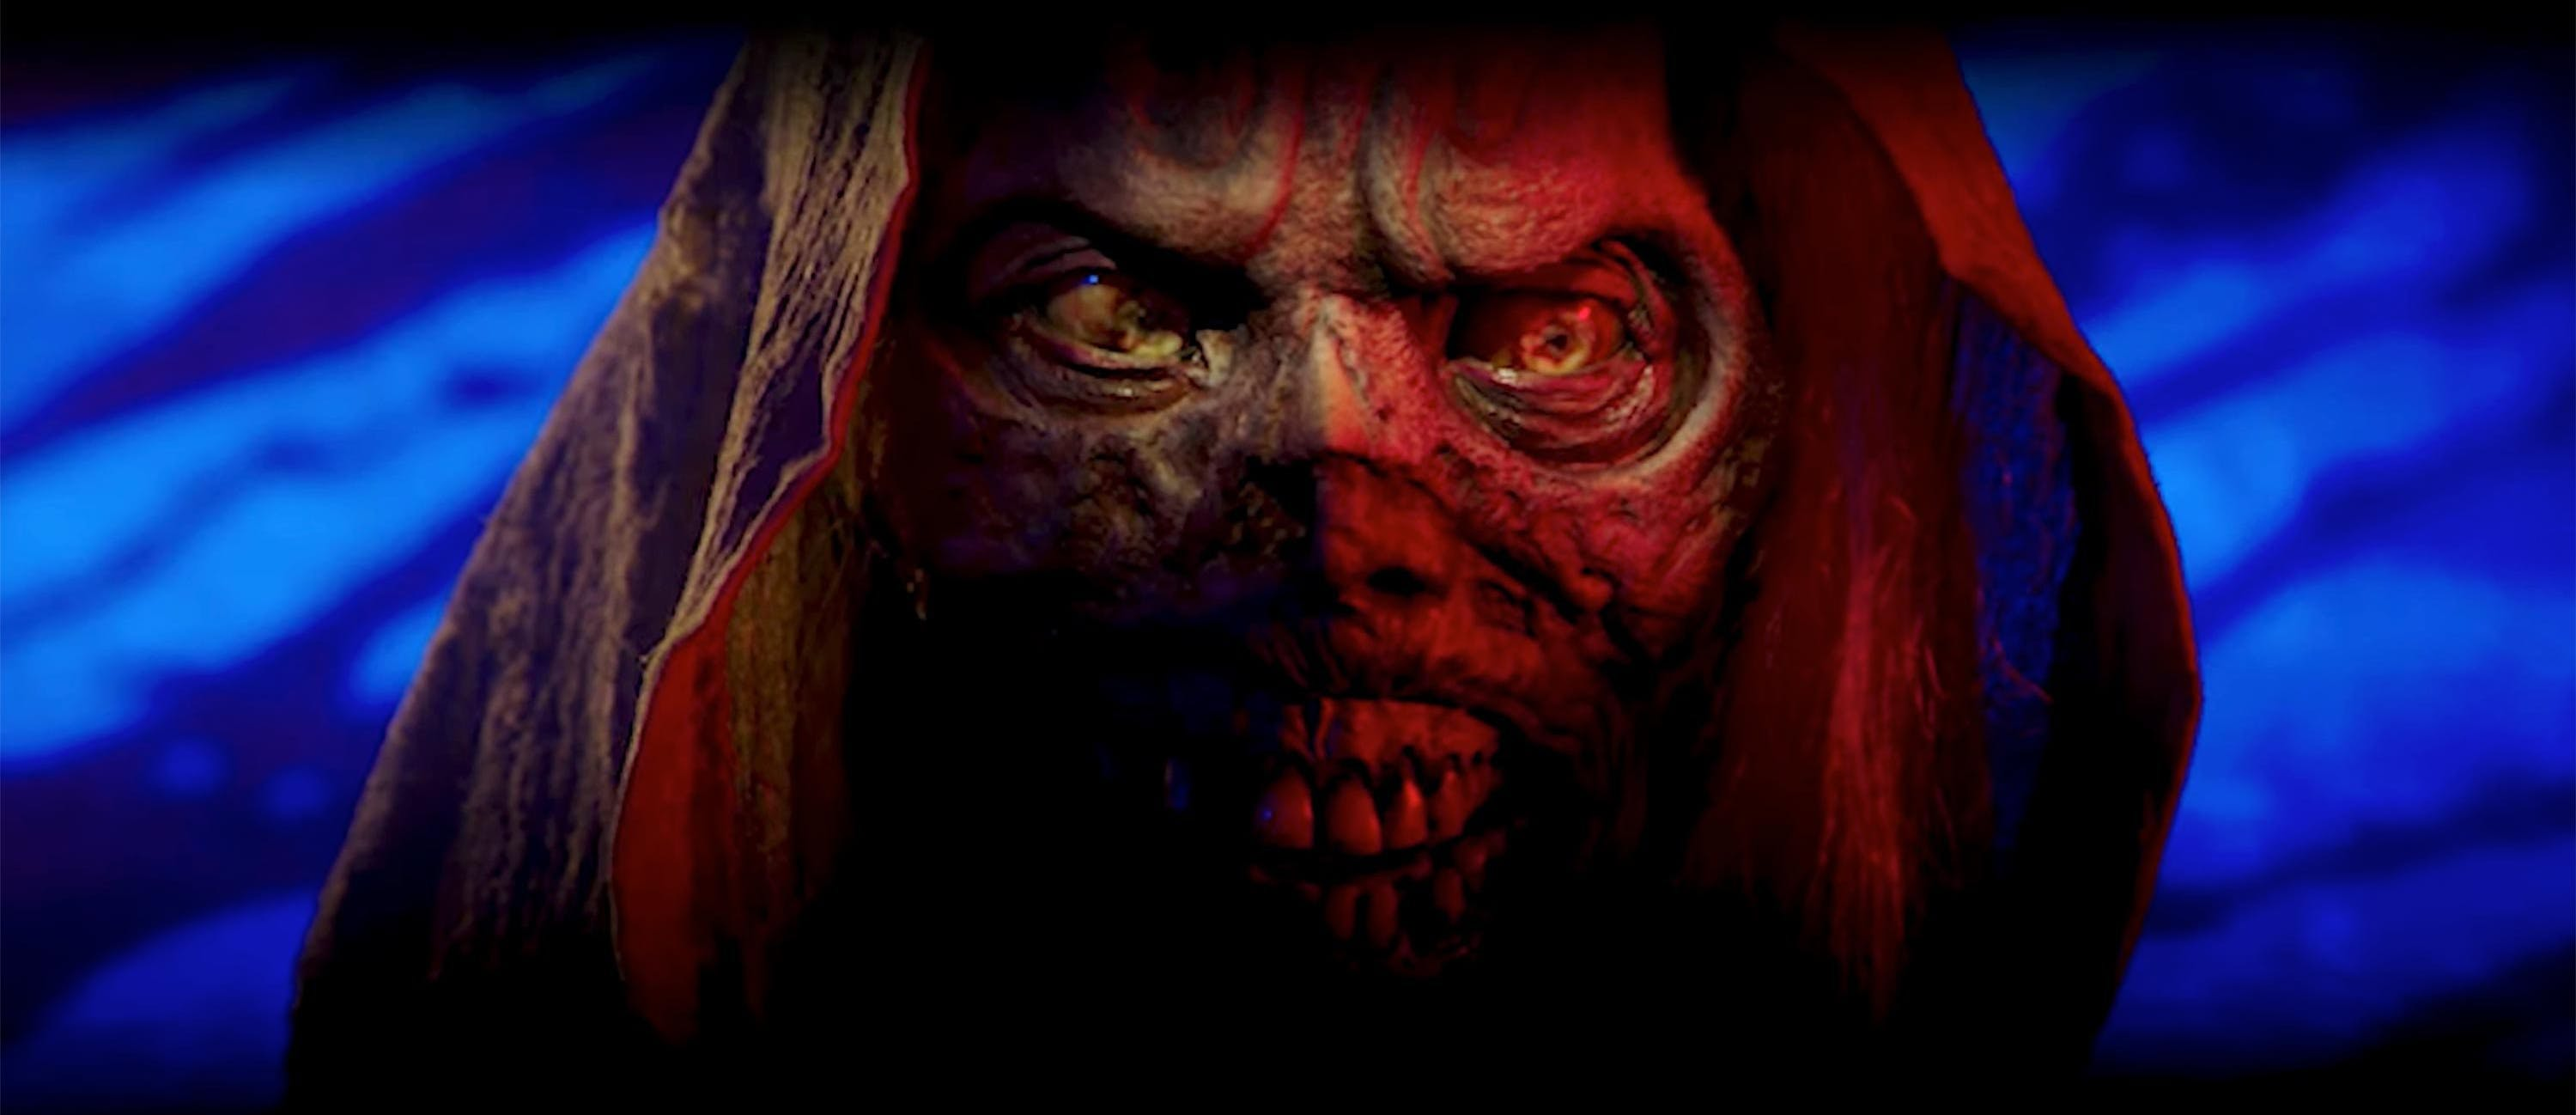 Dig Deeper Into CREEPSHOW With These Behind-The-Scenes Featurettes